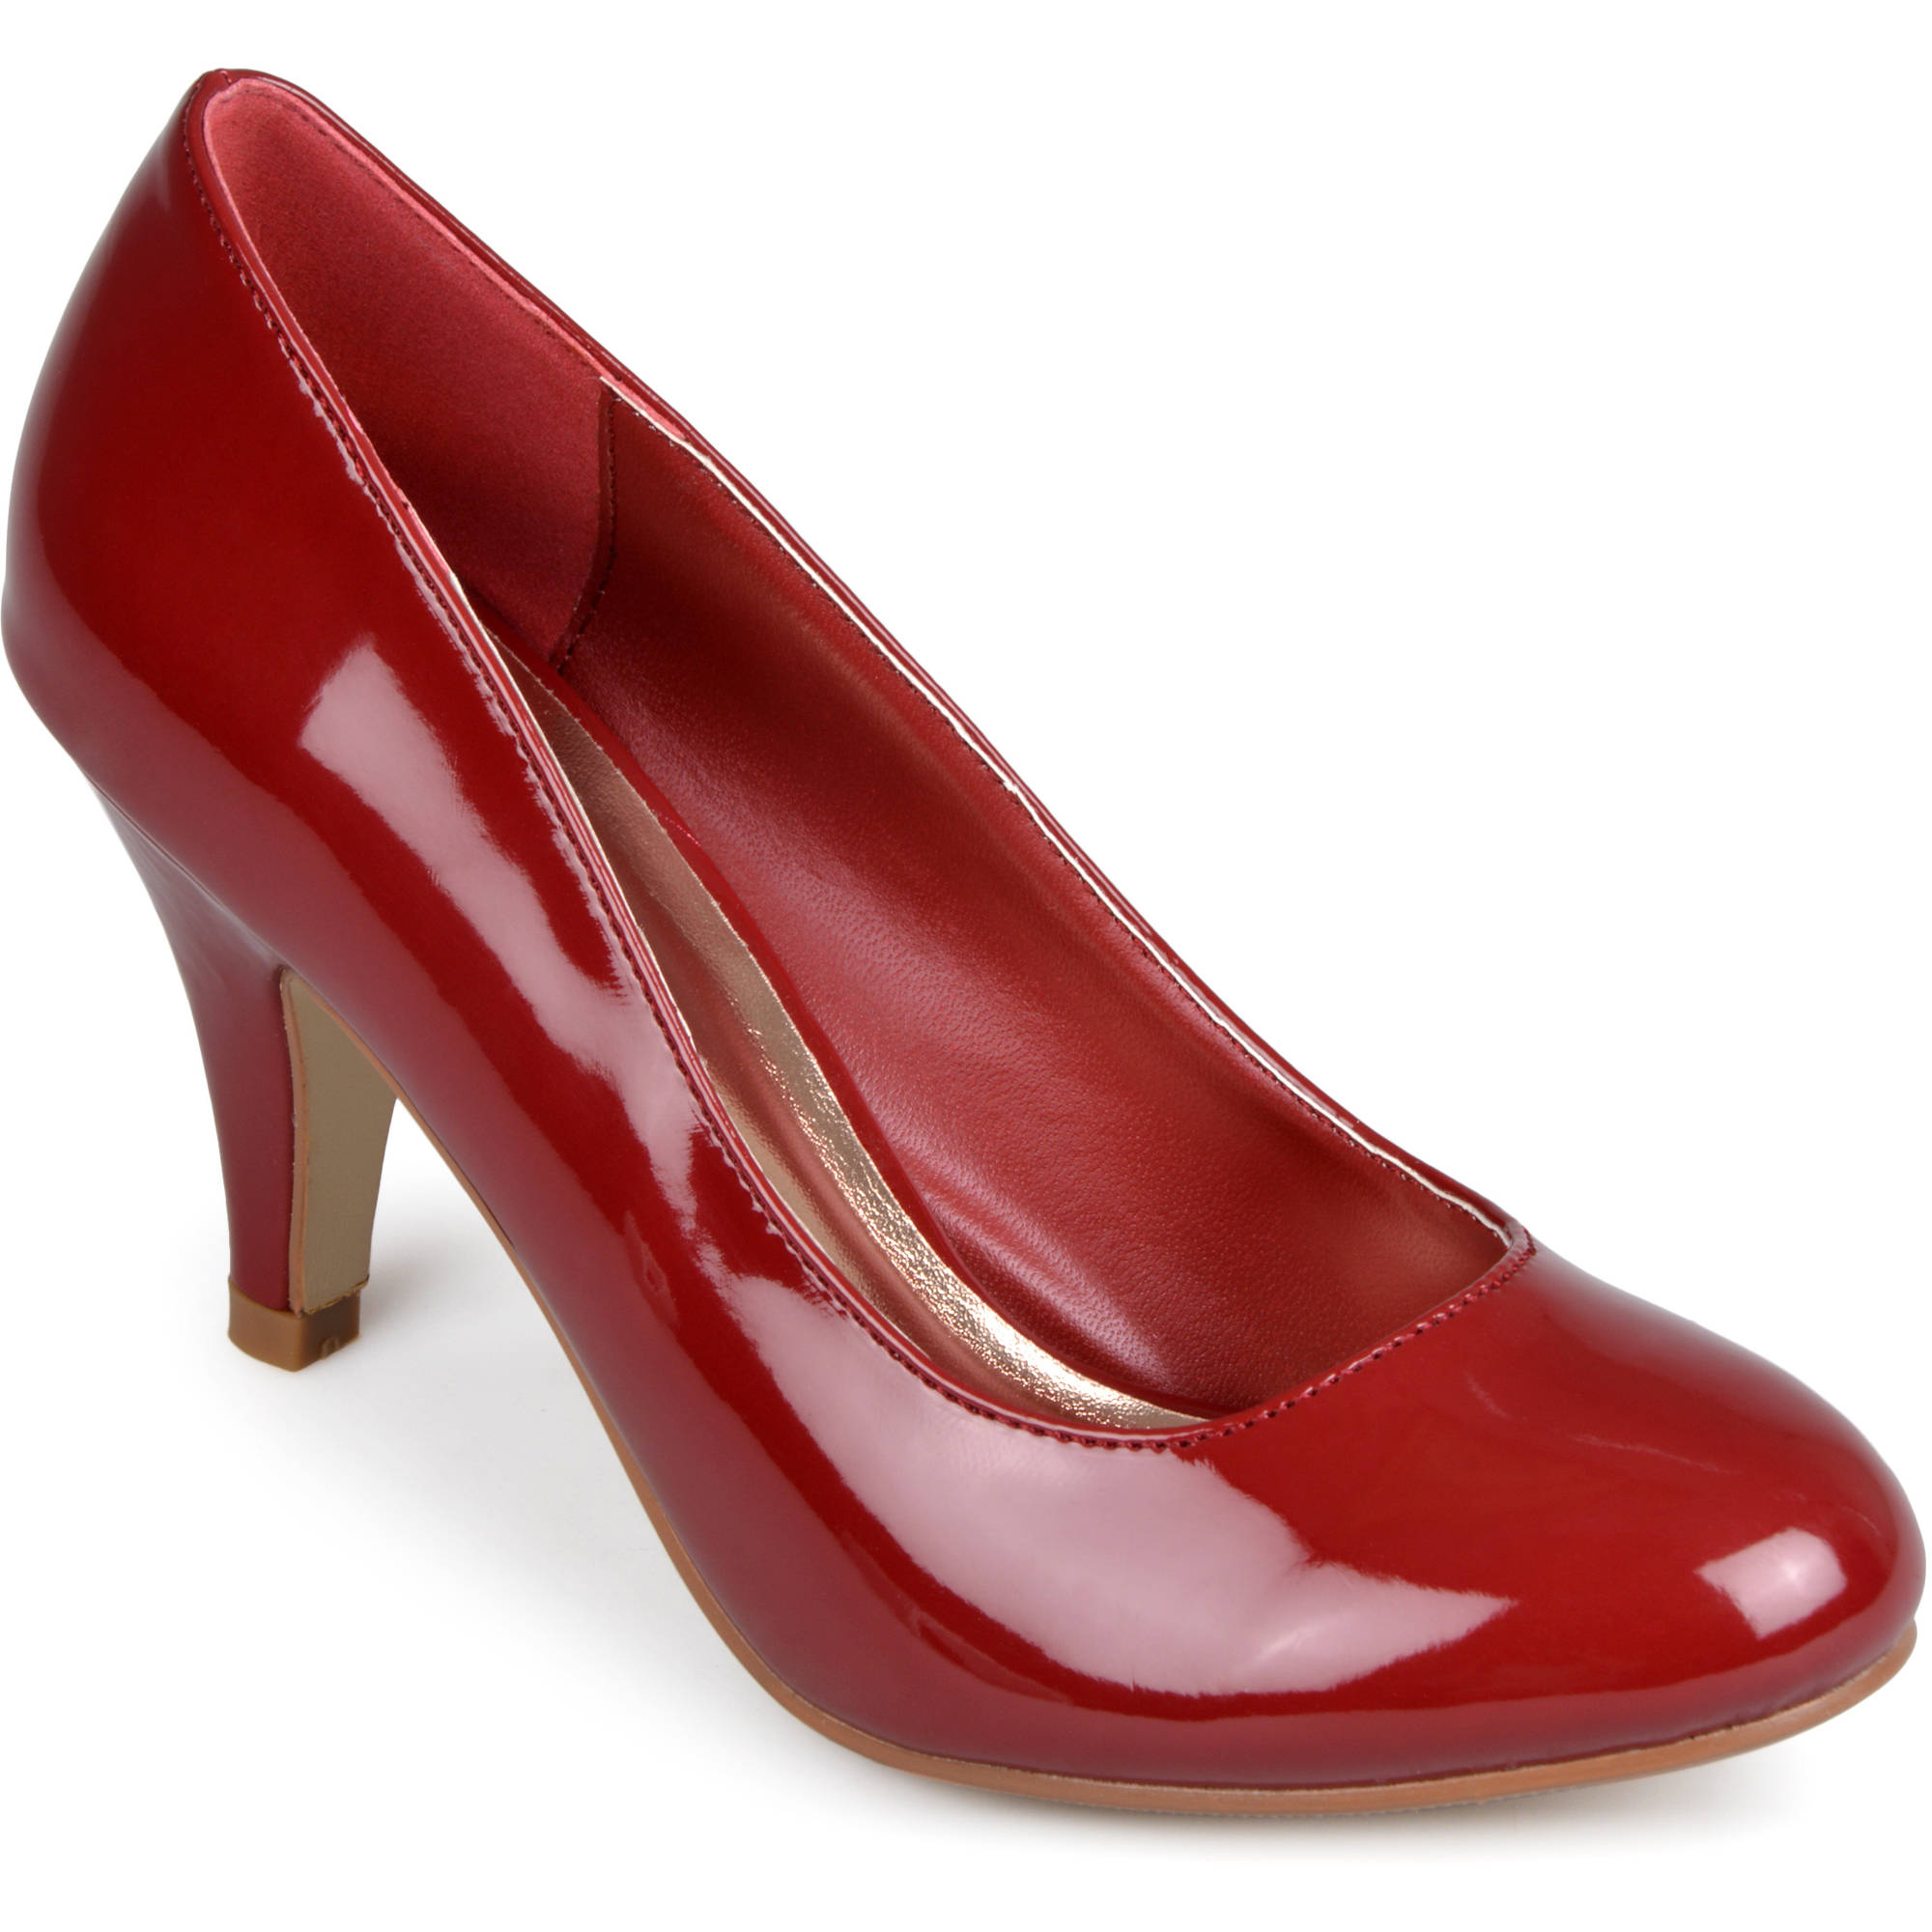 Brinley Co. Women's Round Toe Patent Pumps